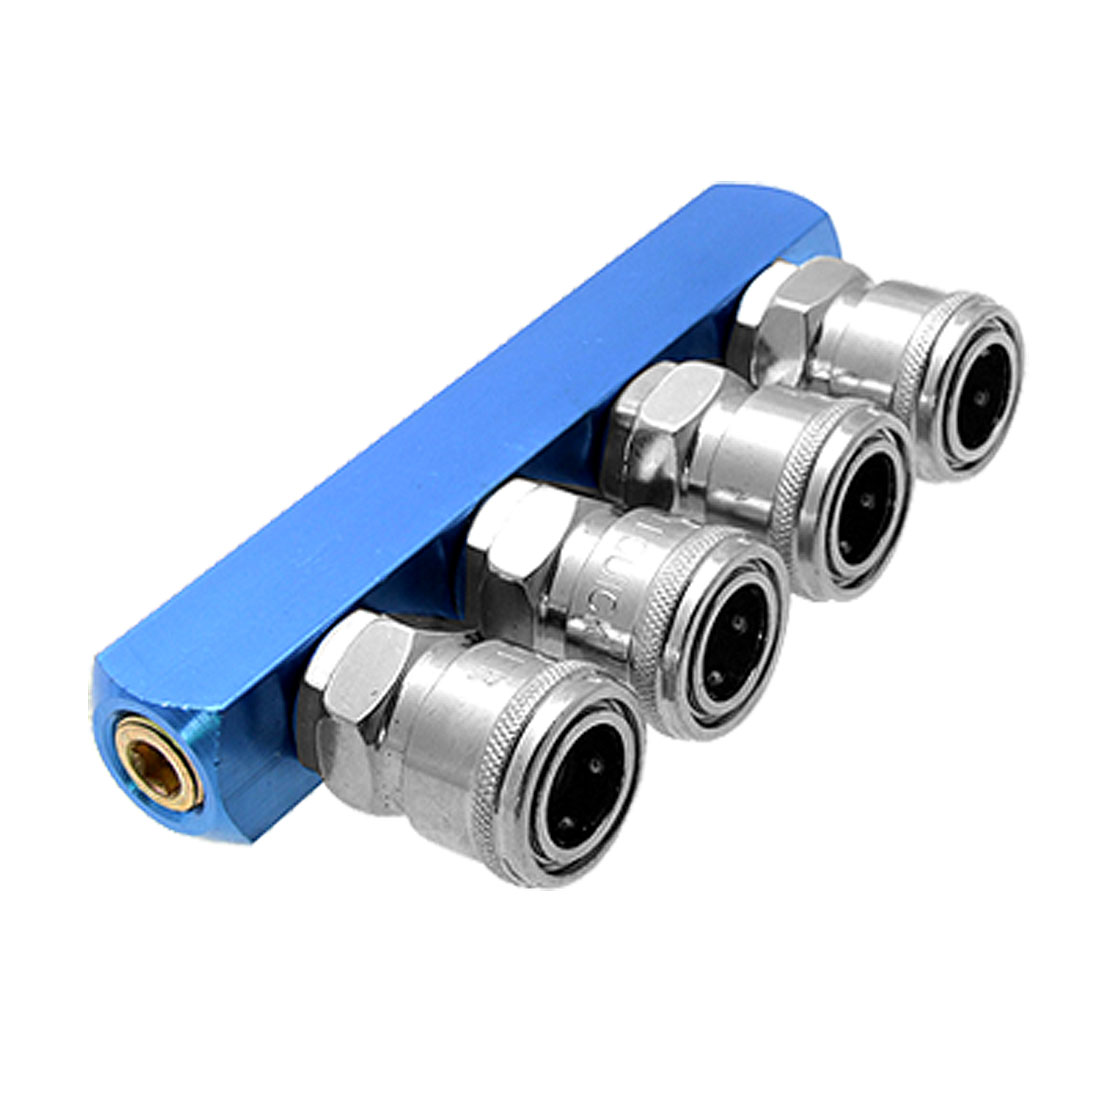 4 Way Pass Quick Connect Coupling Air Hose Coupler Tool